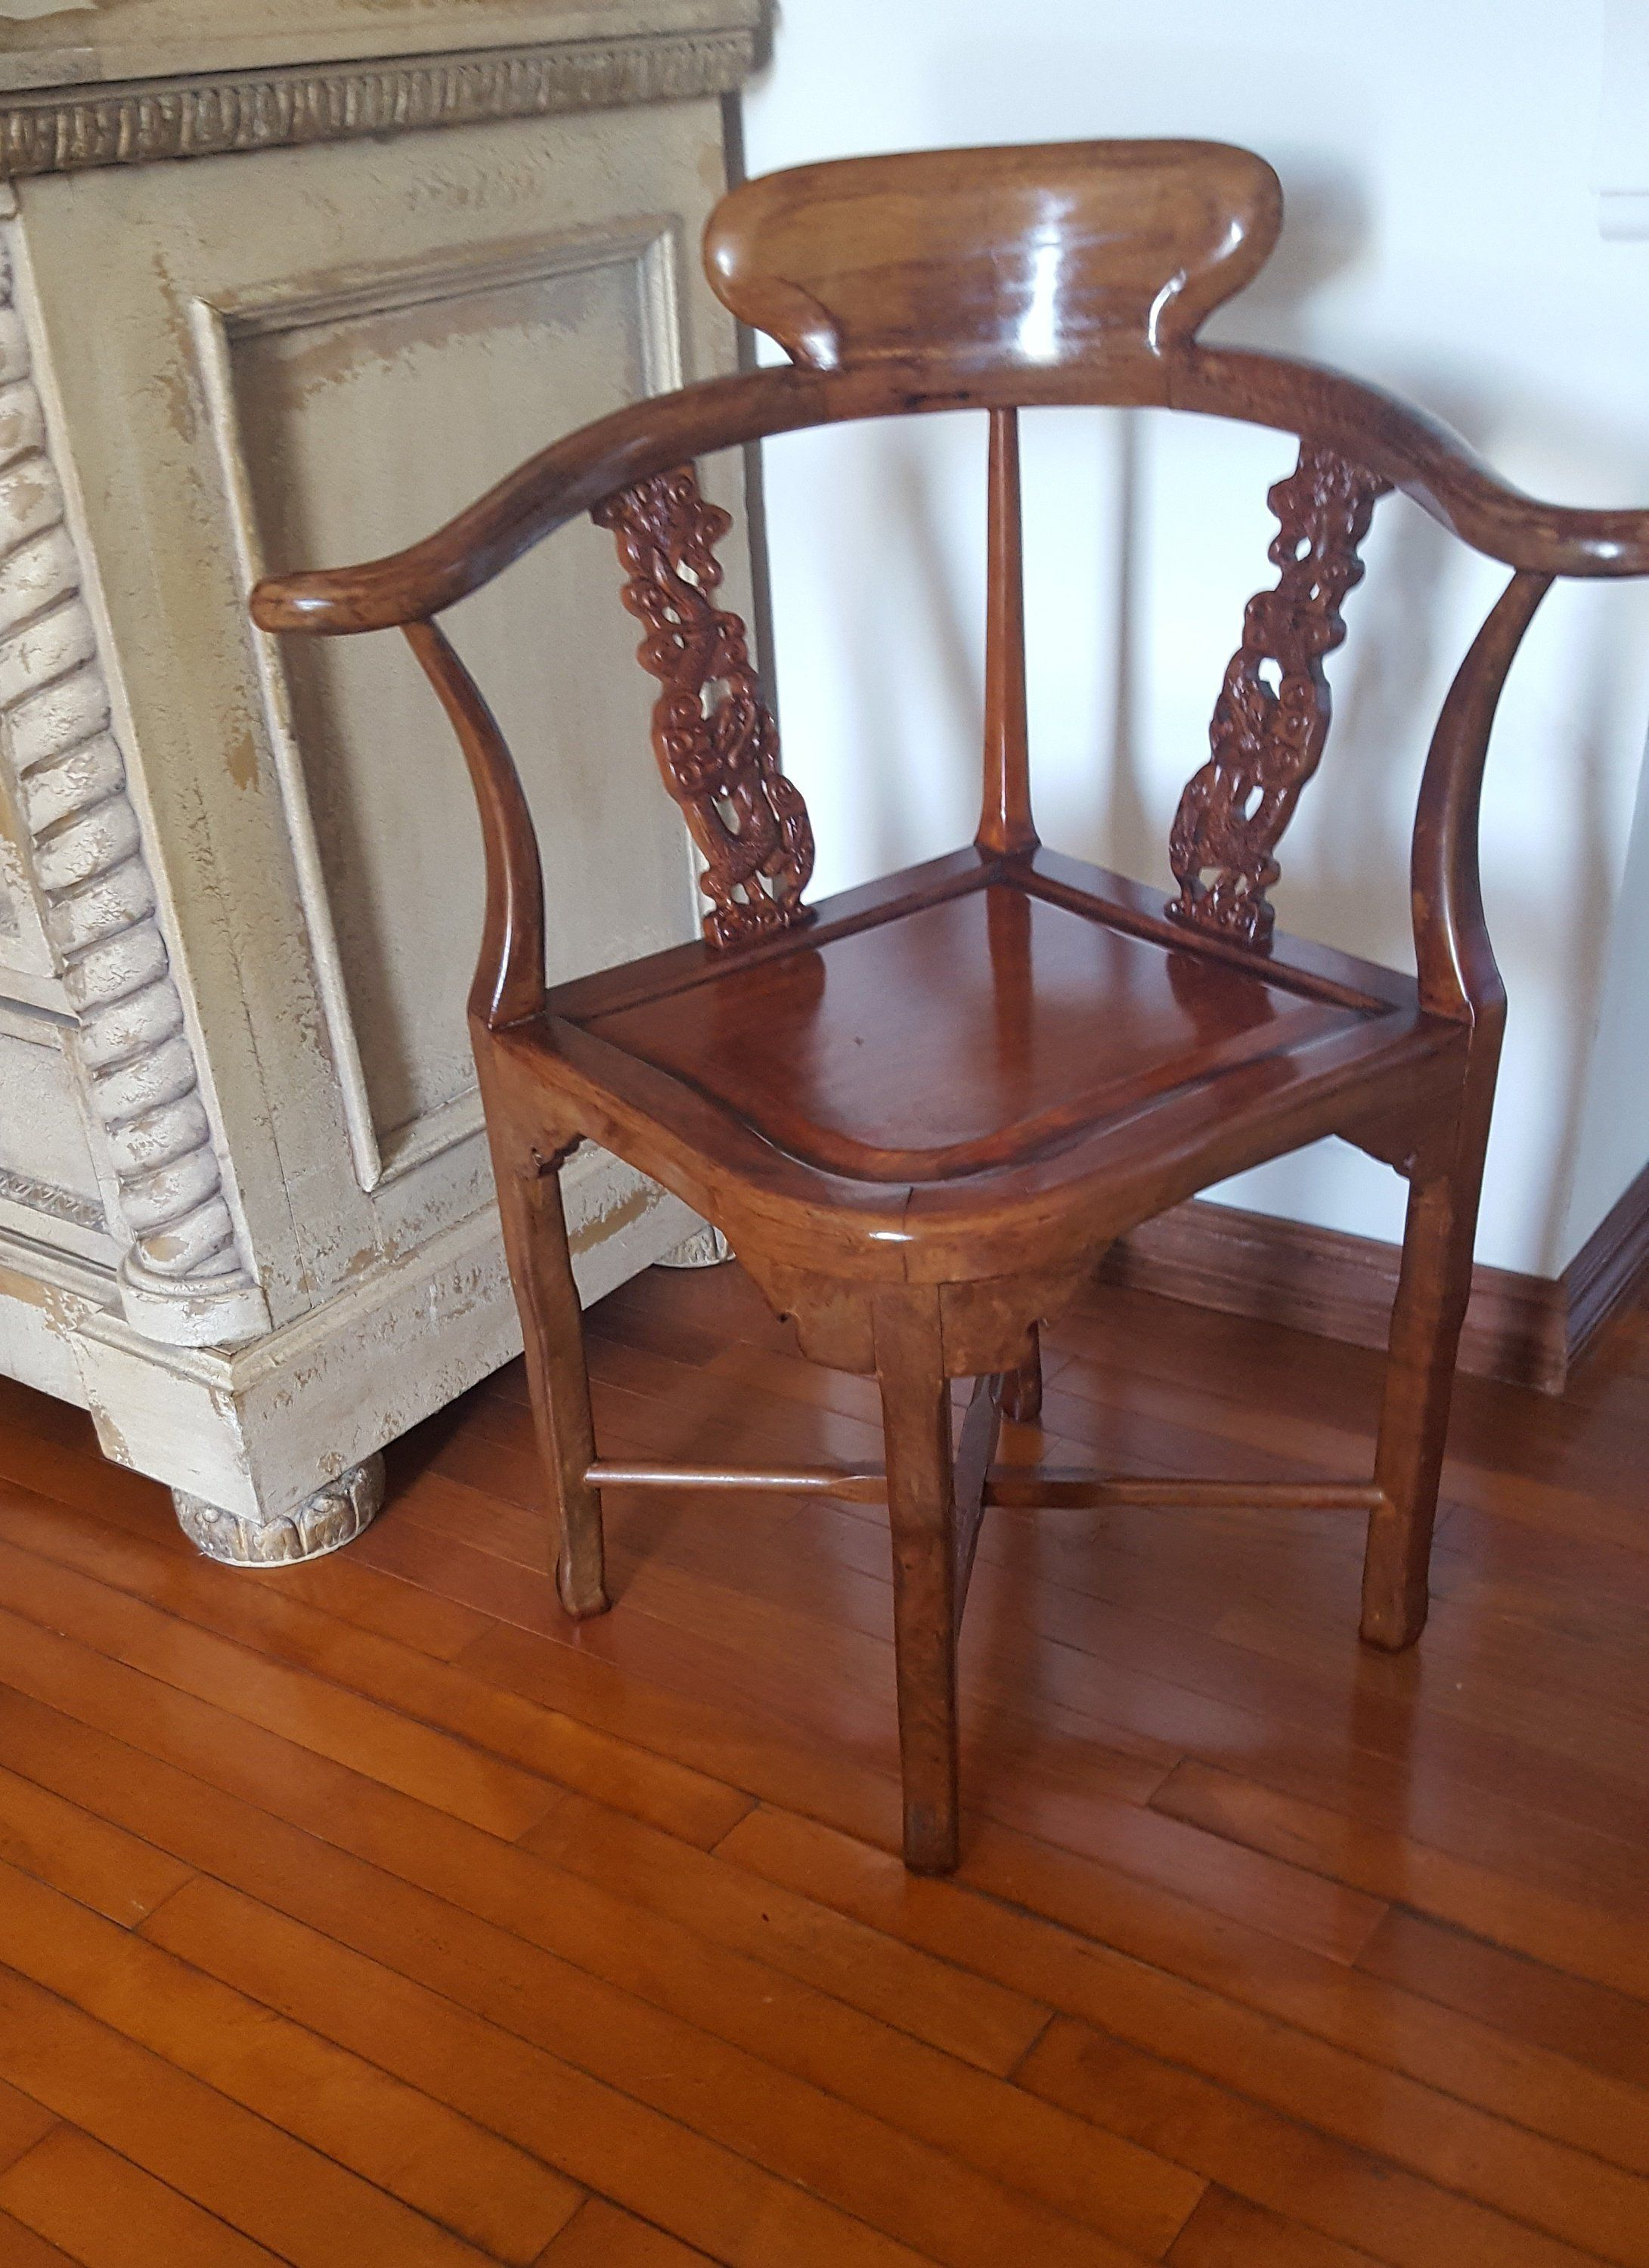 Antique Corner Chair Carved Rosewood Dragon Armchair Solid Wood 1940 S Telephone Chair Chinese Traditional Furnit Chair Artistic Furniture Asian Decor Bathroom